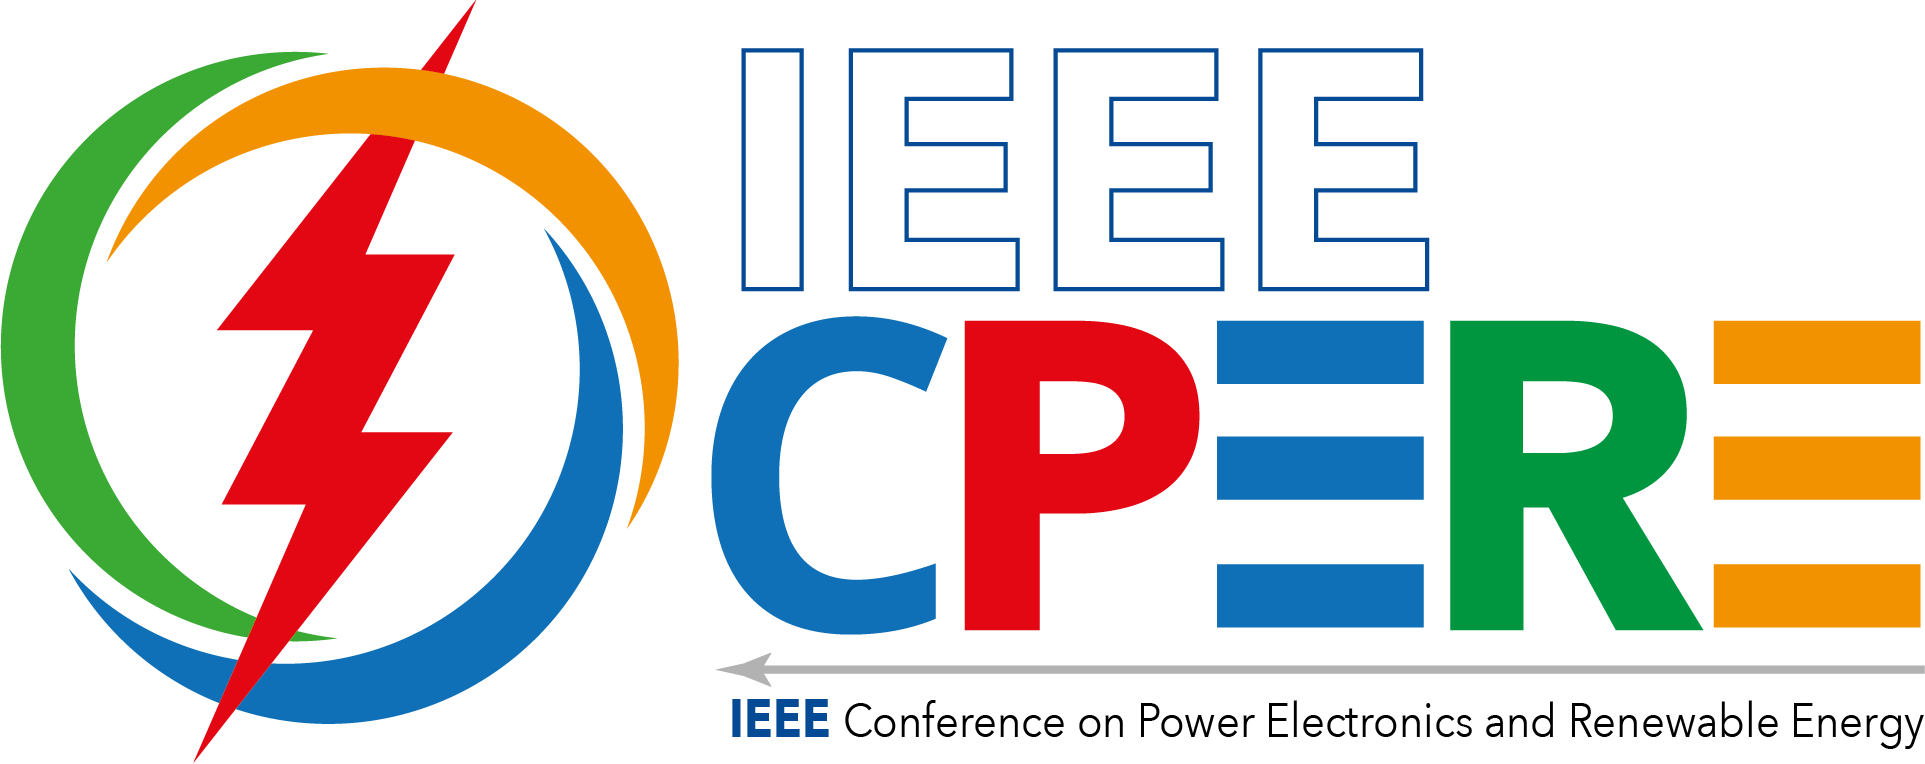 CPERE logo